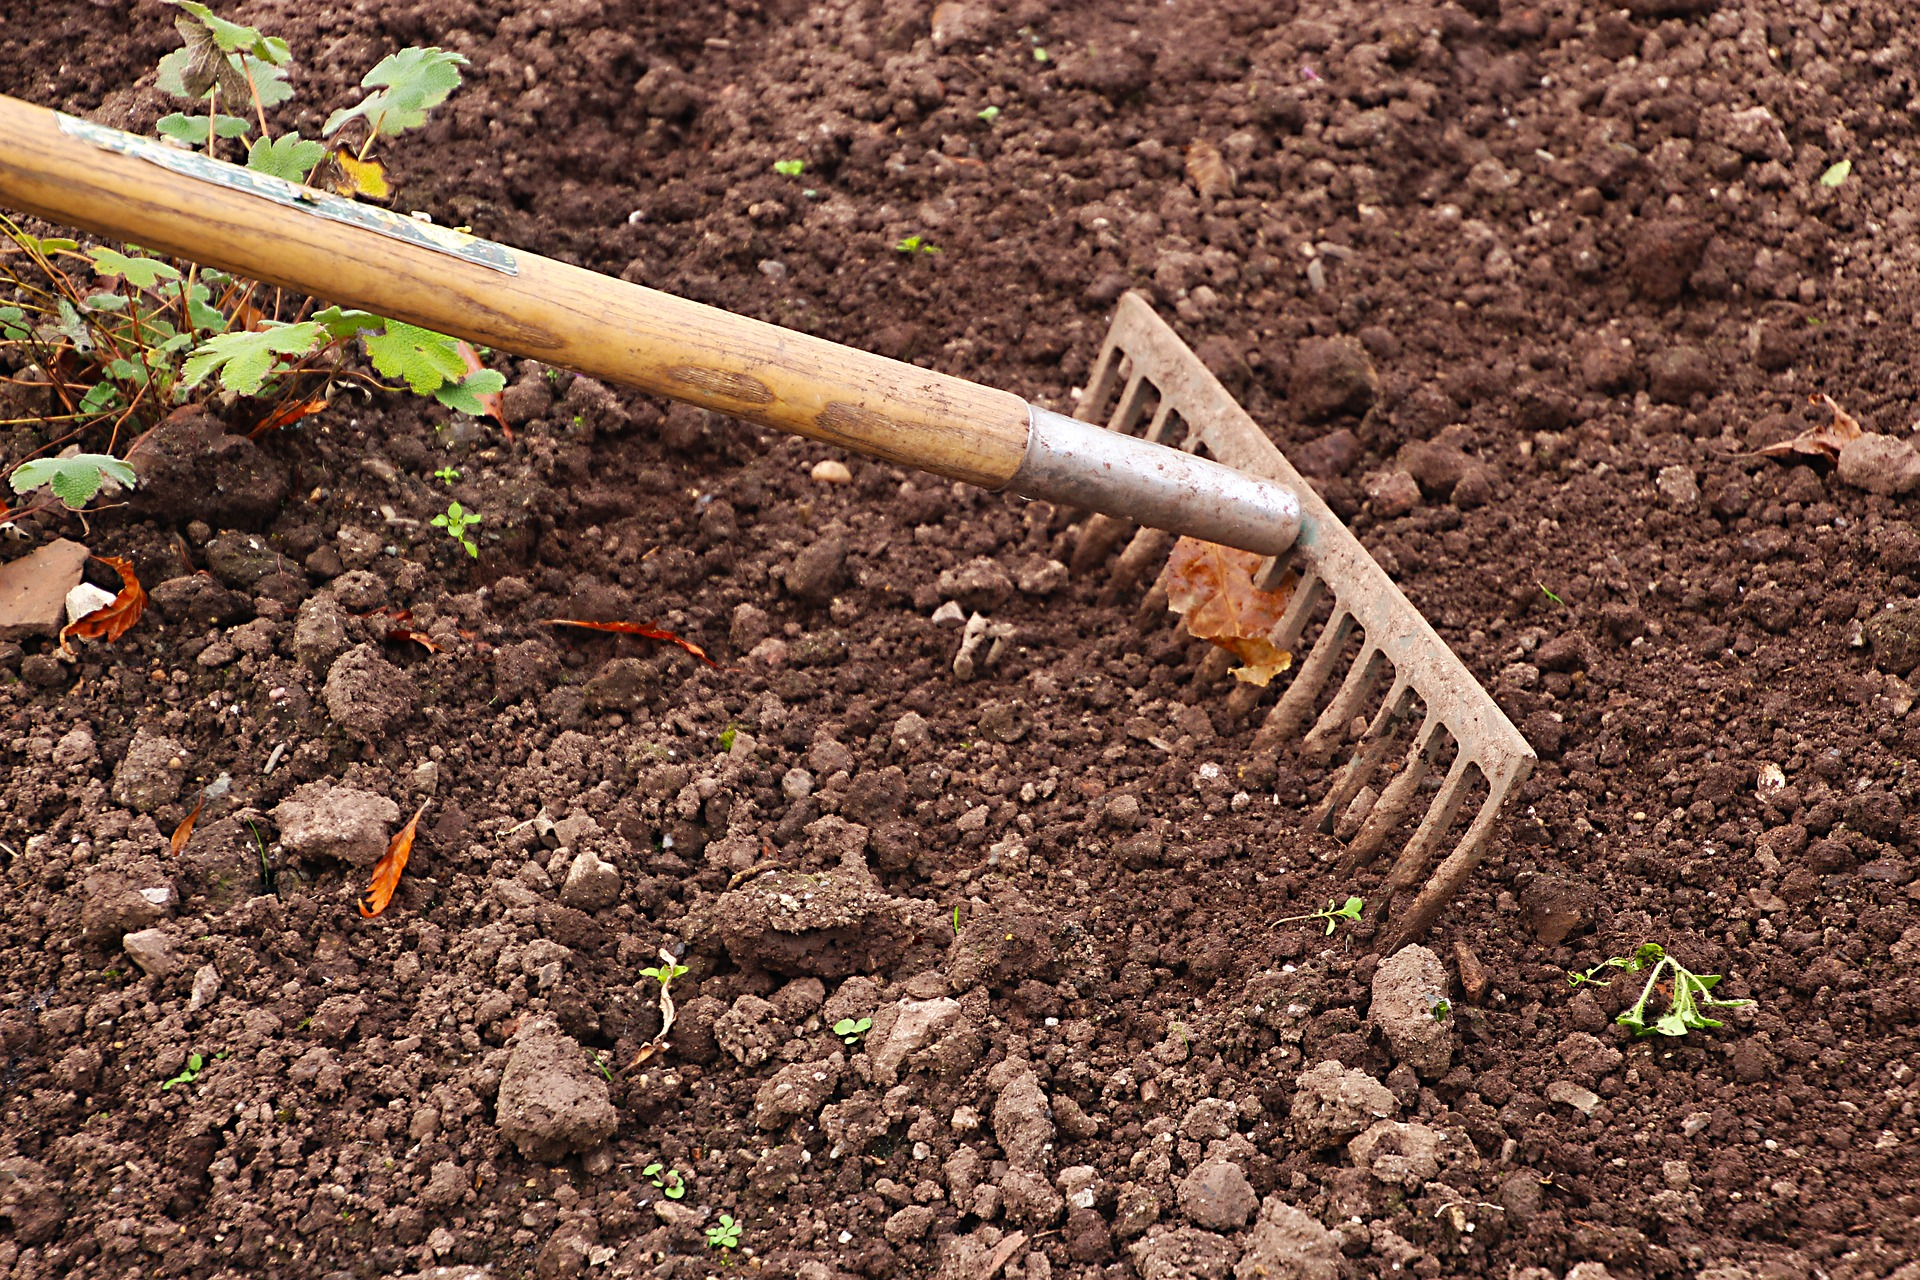 The appearance of soil can be deceptive.